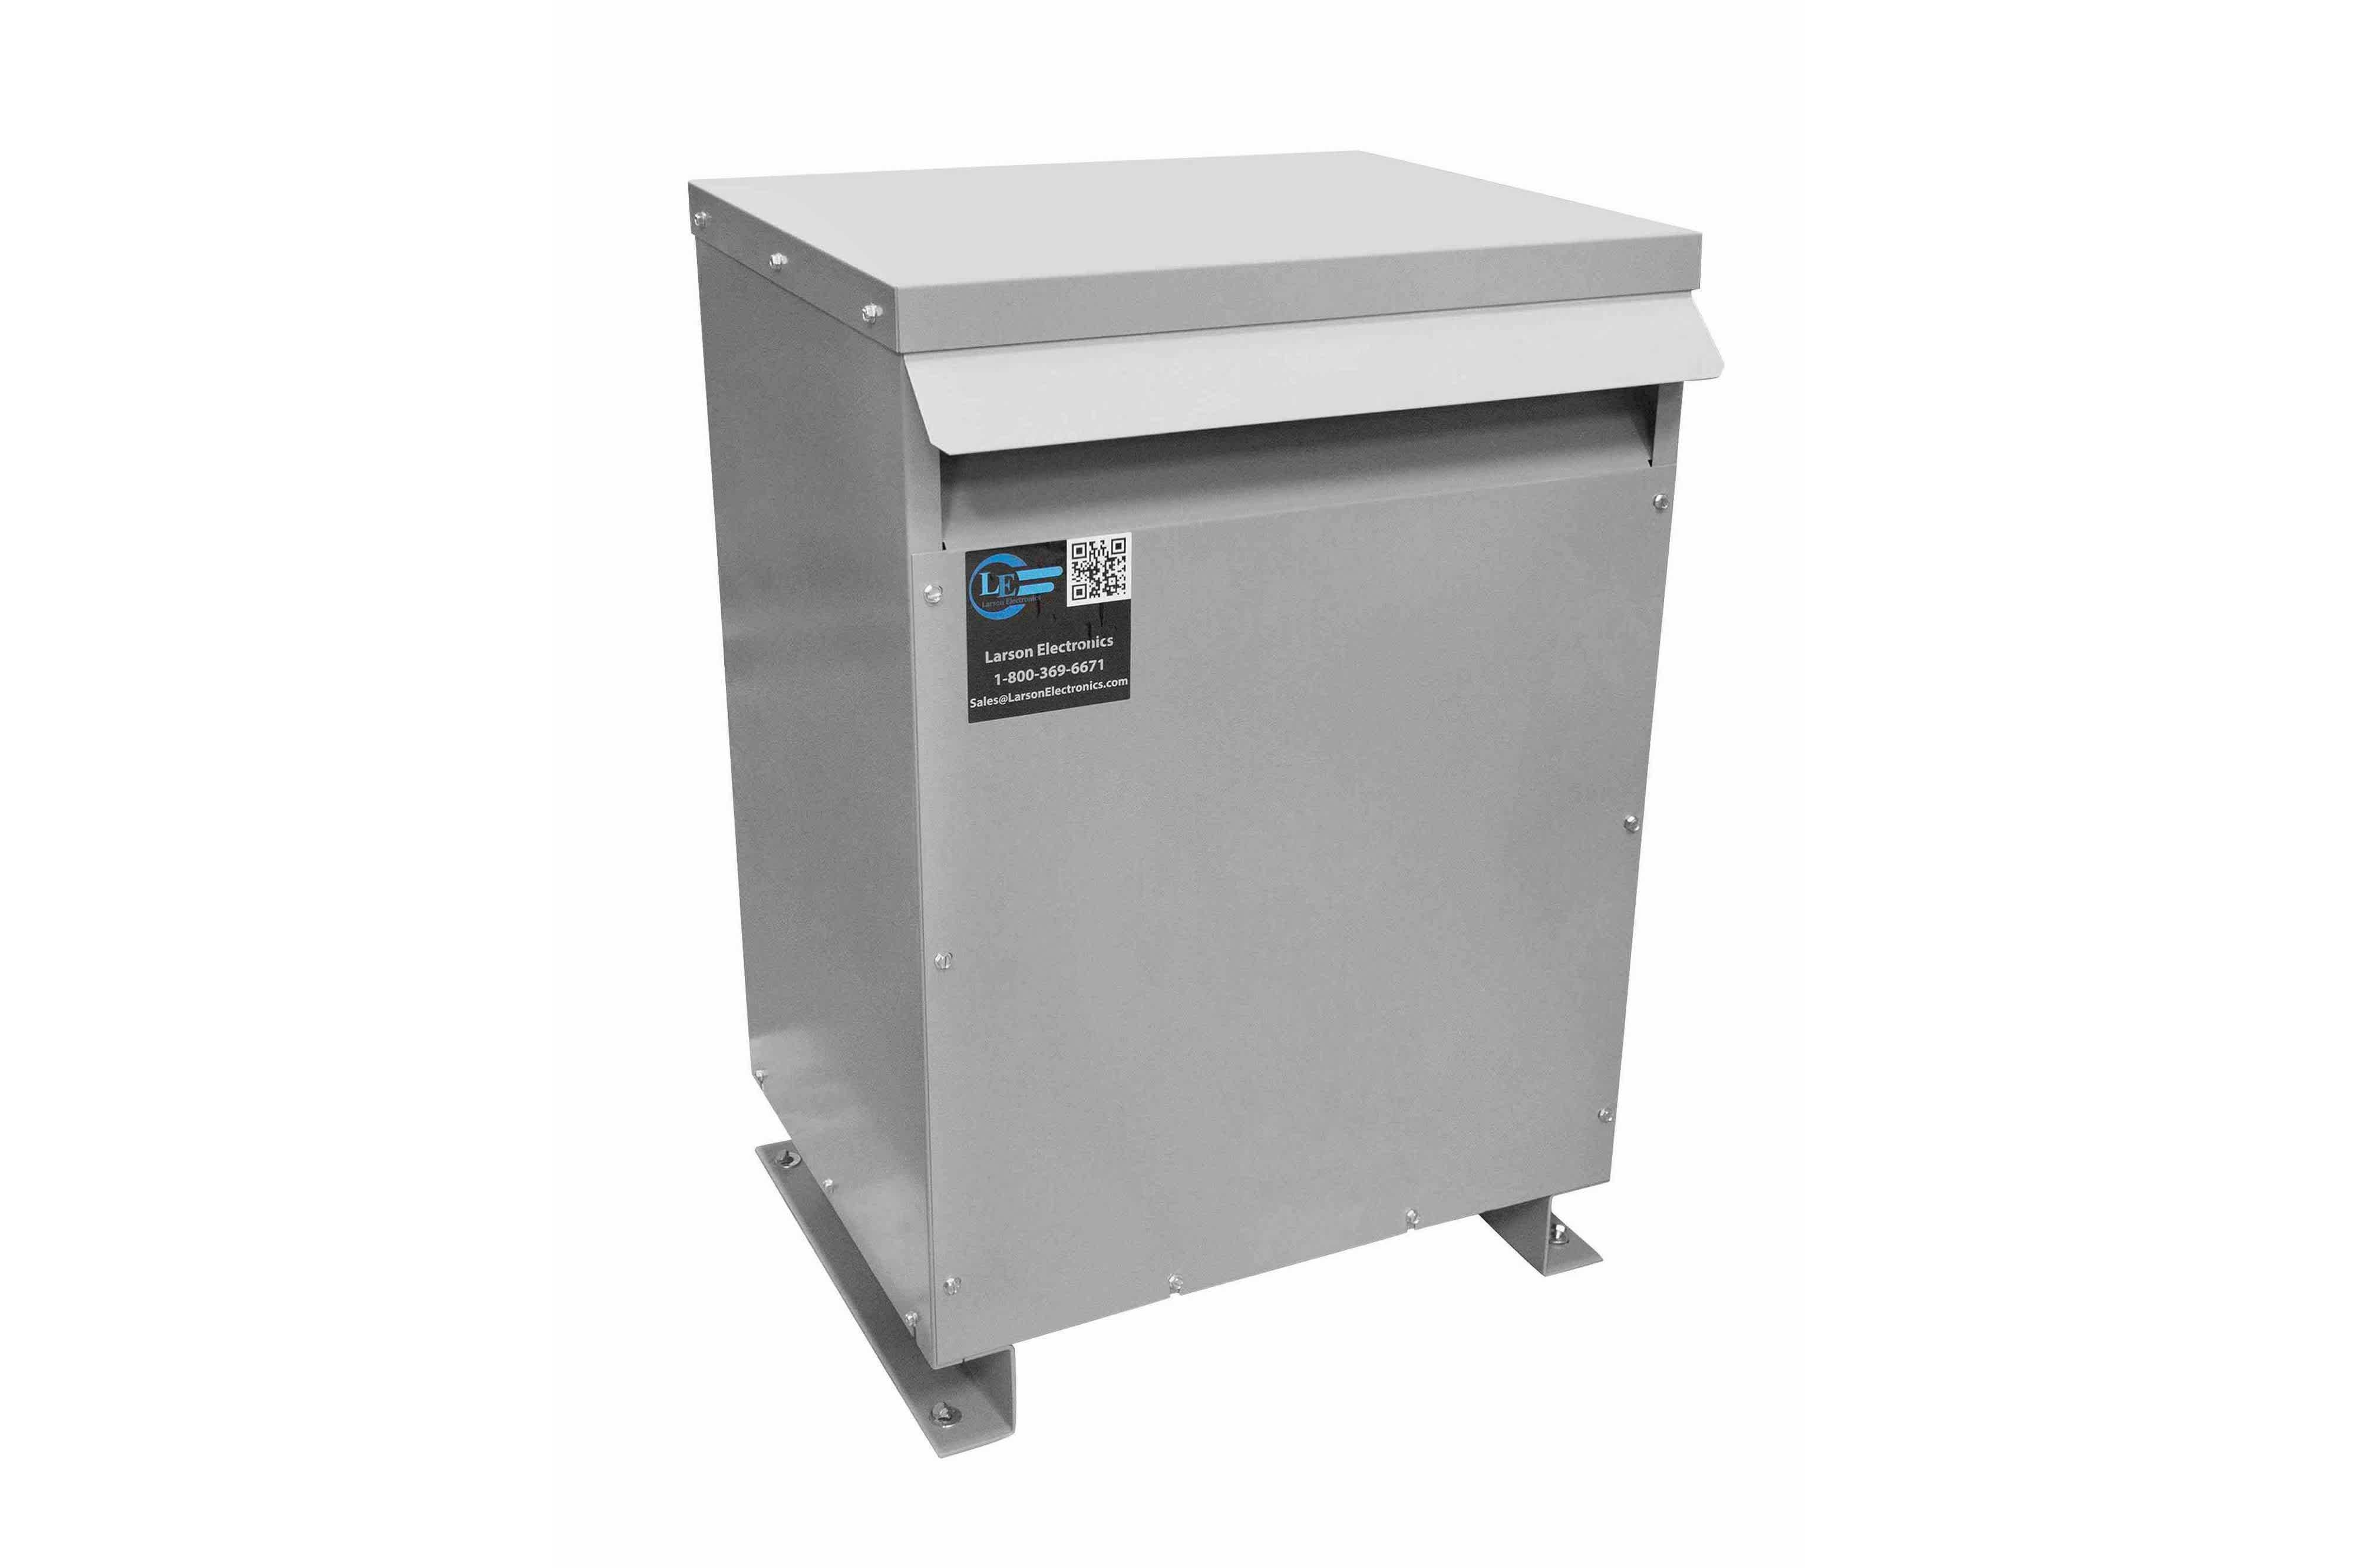 80 kVA 3PH DOE Transformer, 400V Delta Primary, 480Y/277 Wye-N Secondary, N3R, Ventilated, 60 Hz